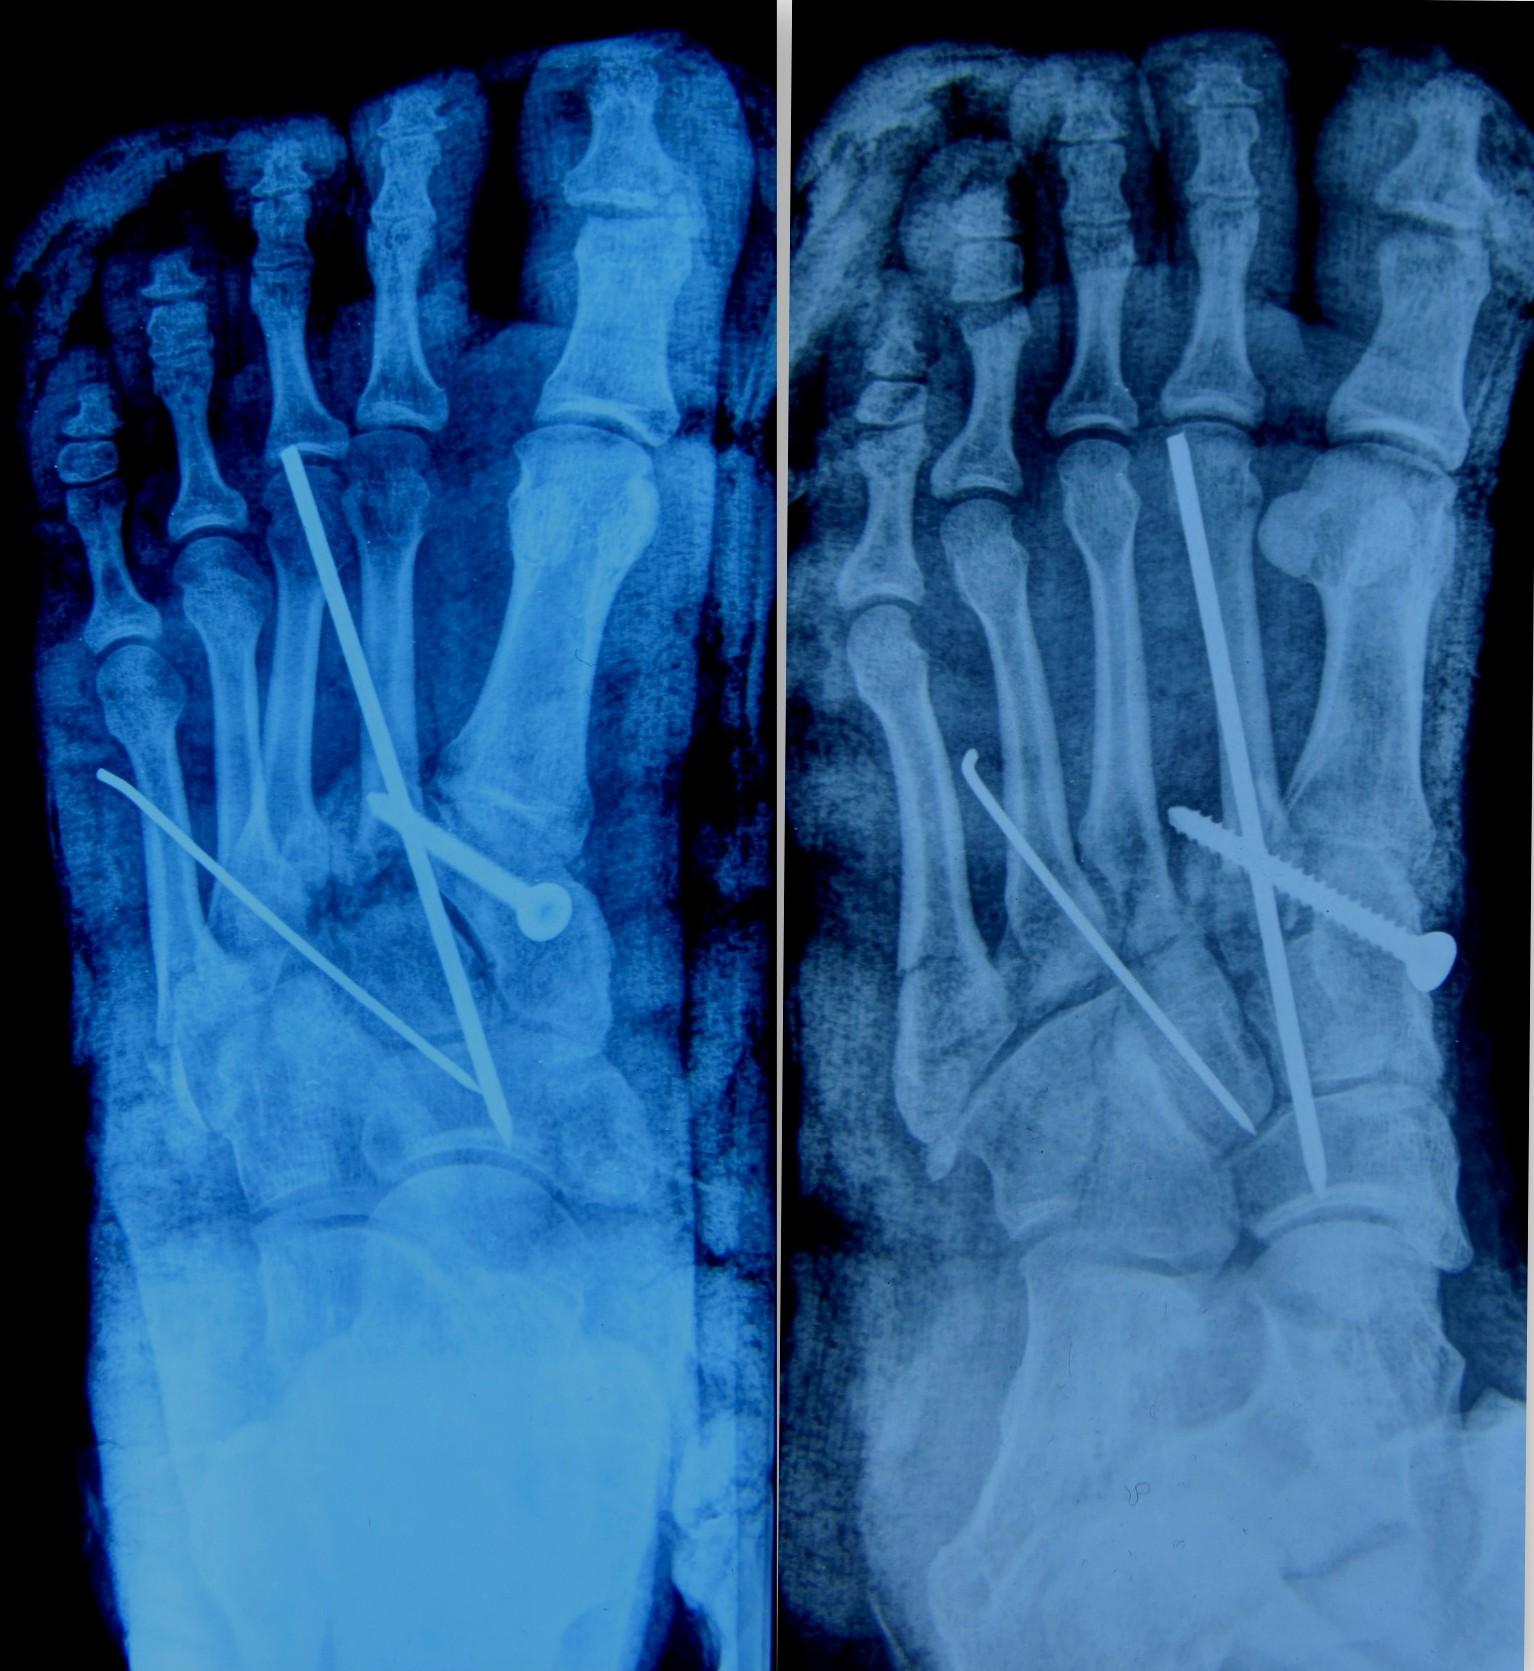 dislocation | The Foot and Ankle Online Journal